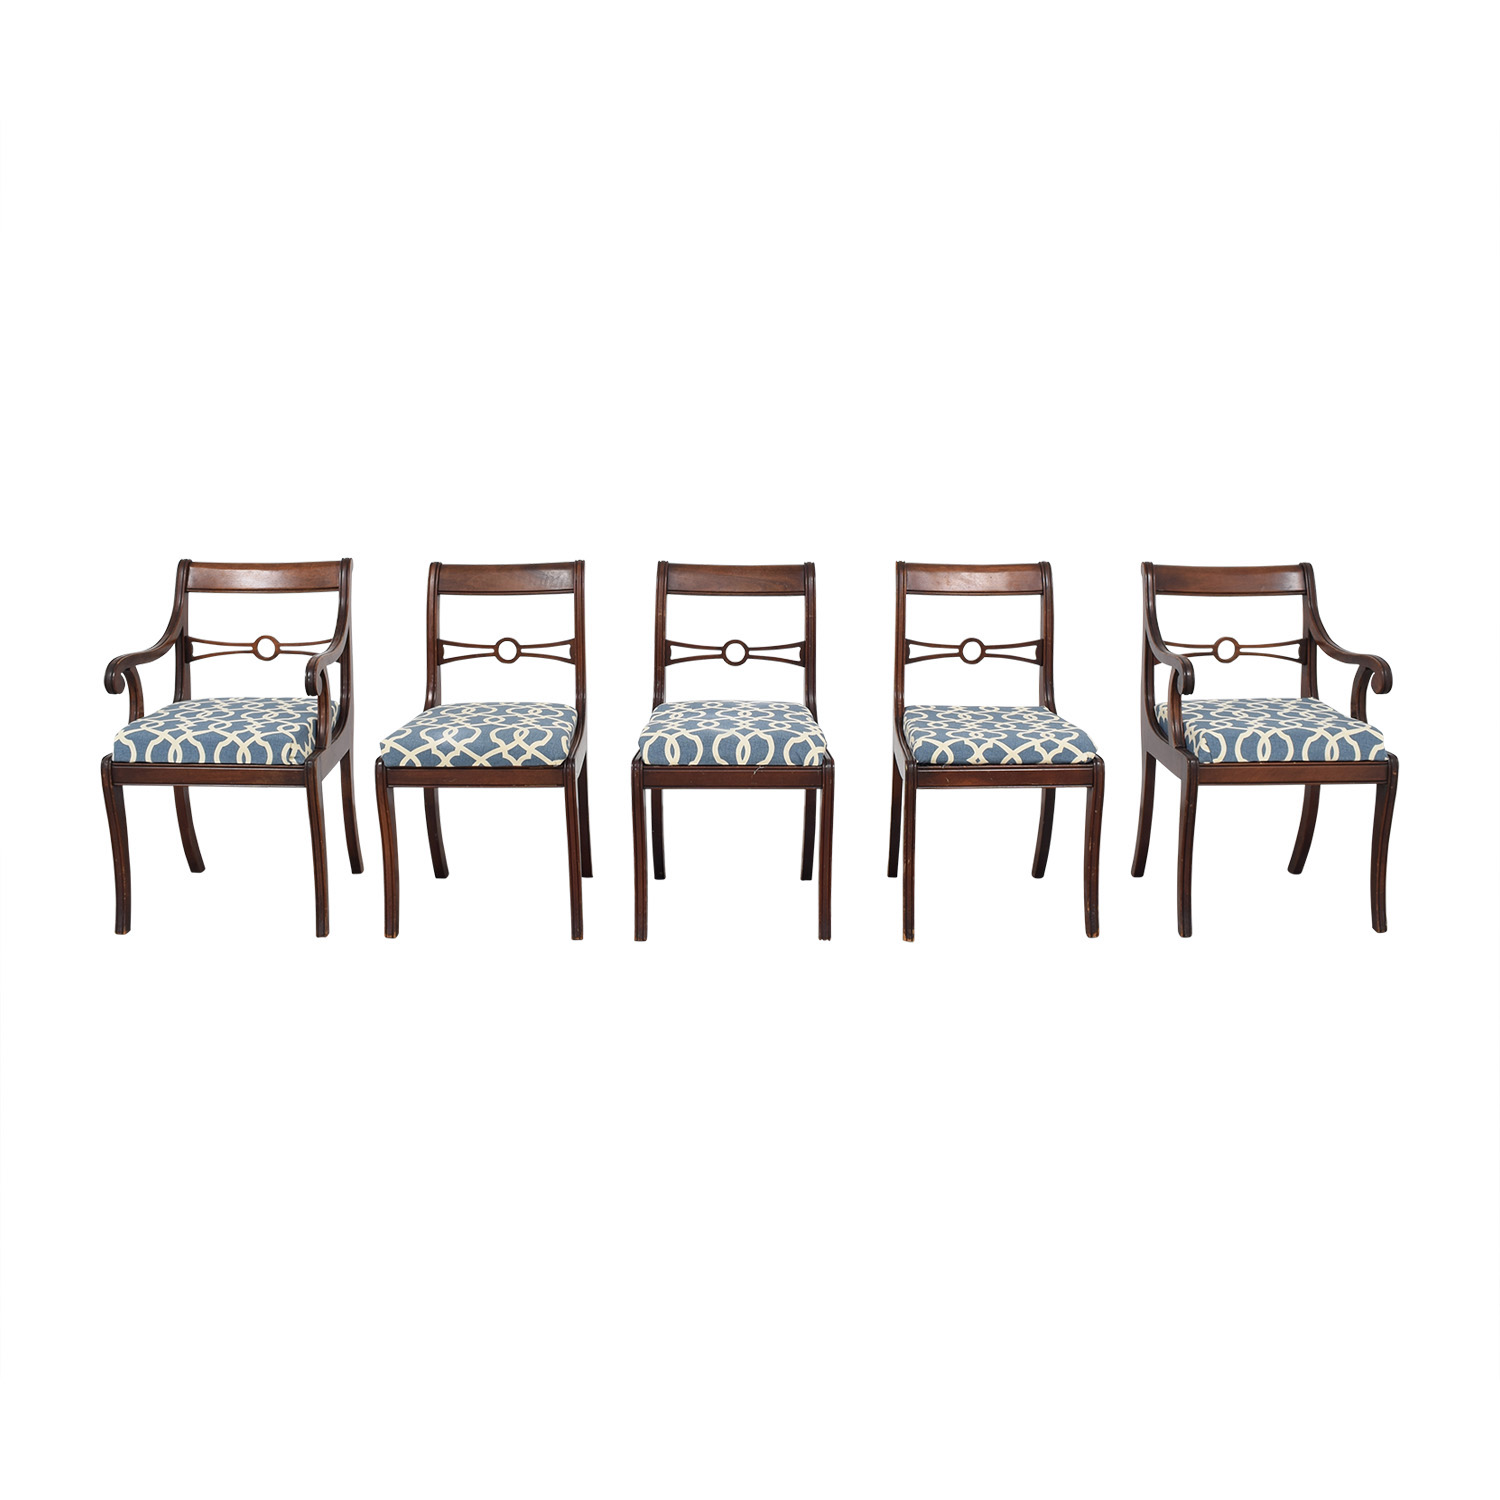 Upholstered Dining Room Chairs nyc